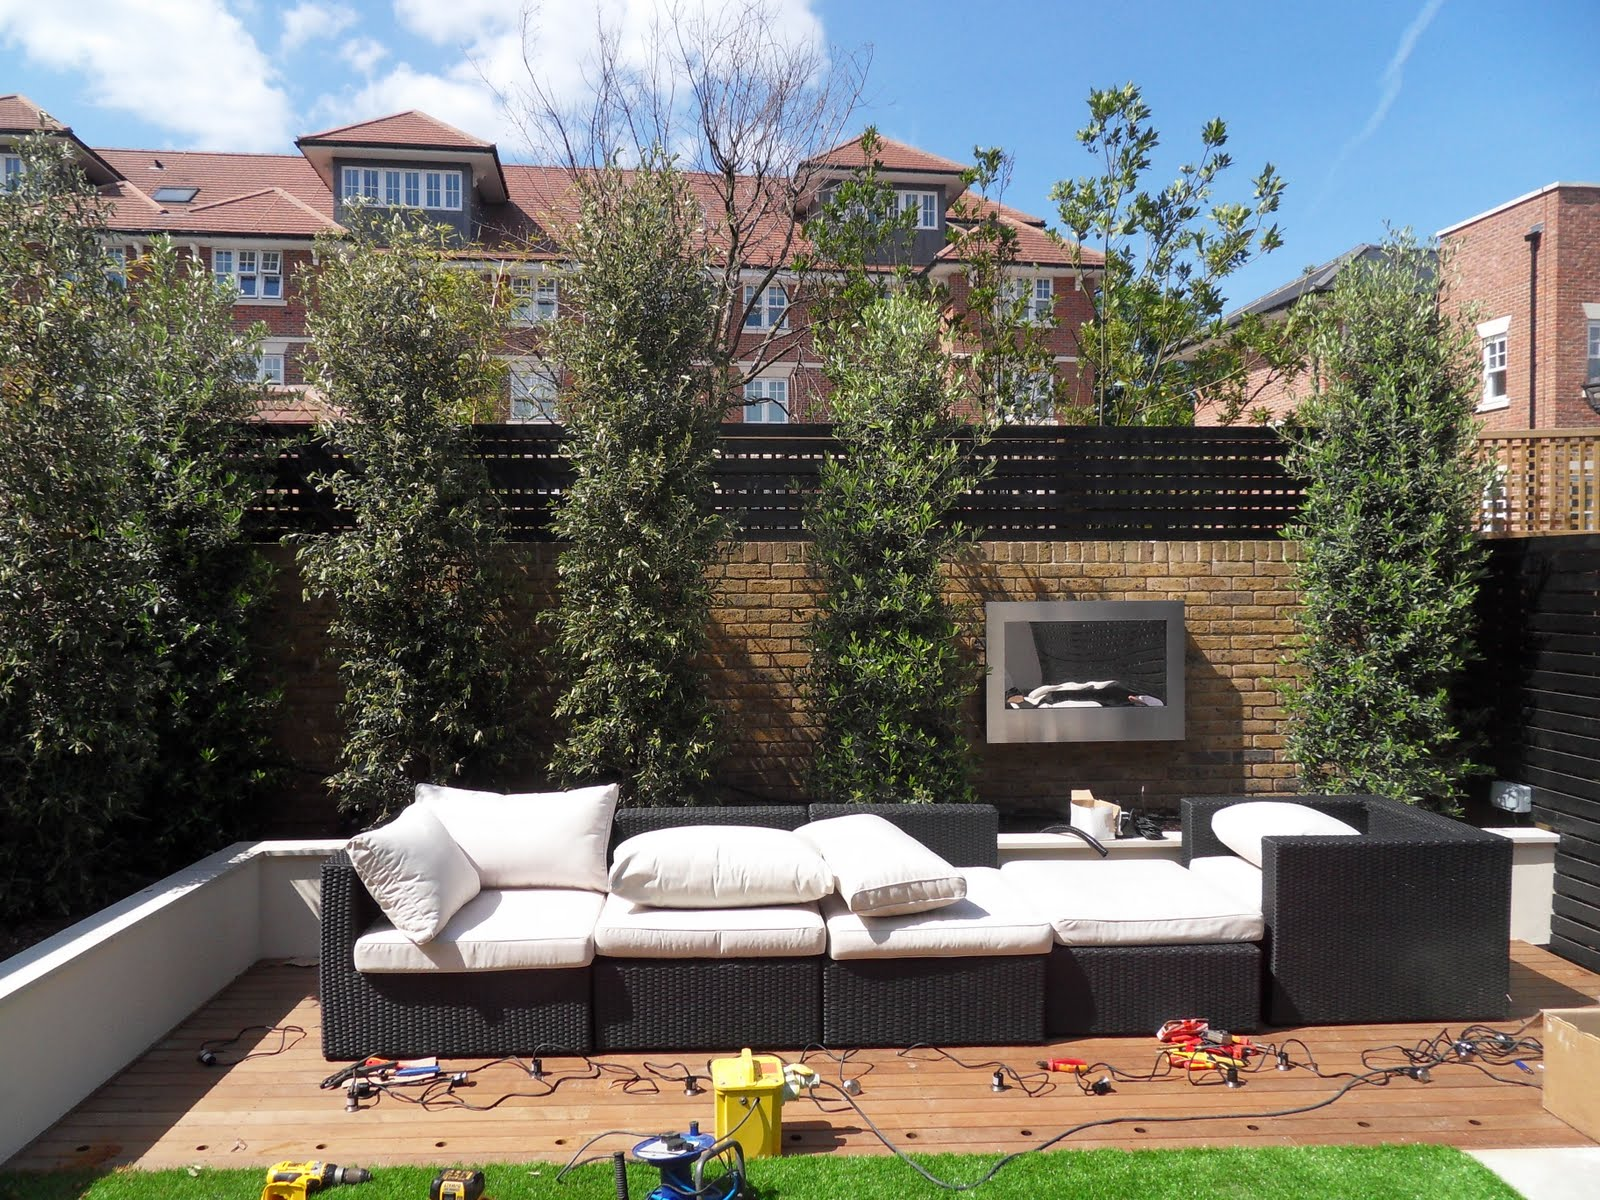 Garden Design Degree Greencube Garden And Landscape Design Uk Twickenham Courtyard Garden